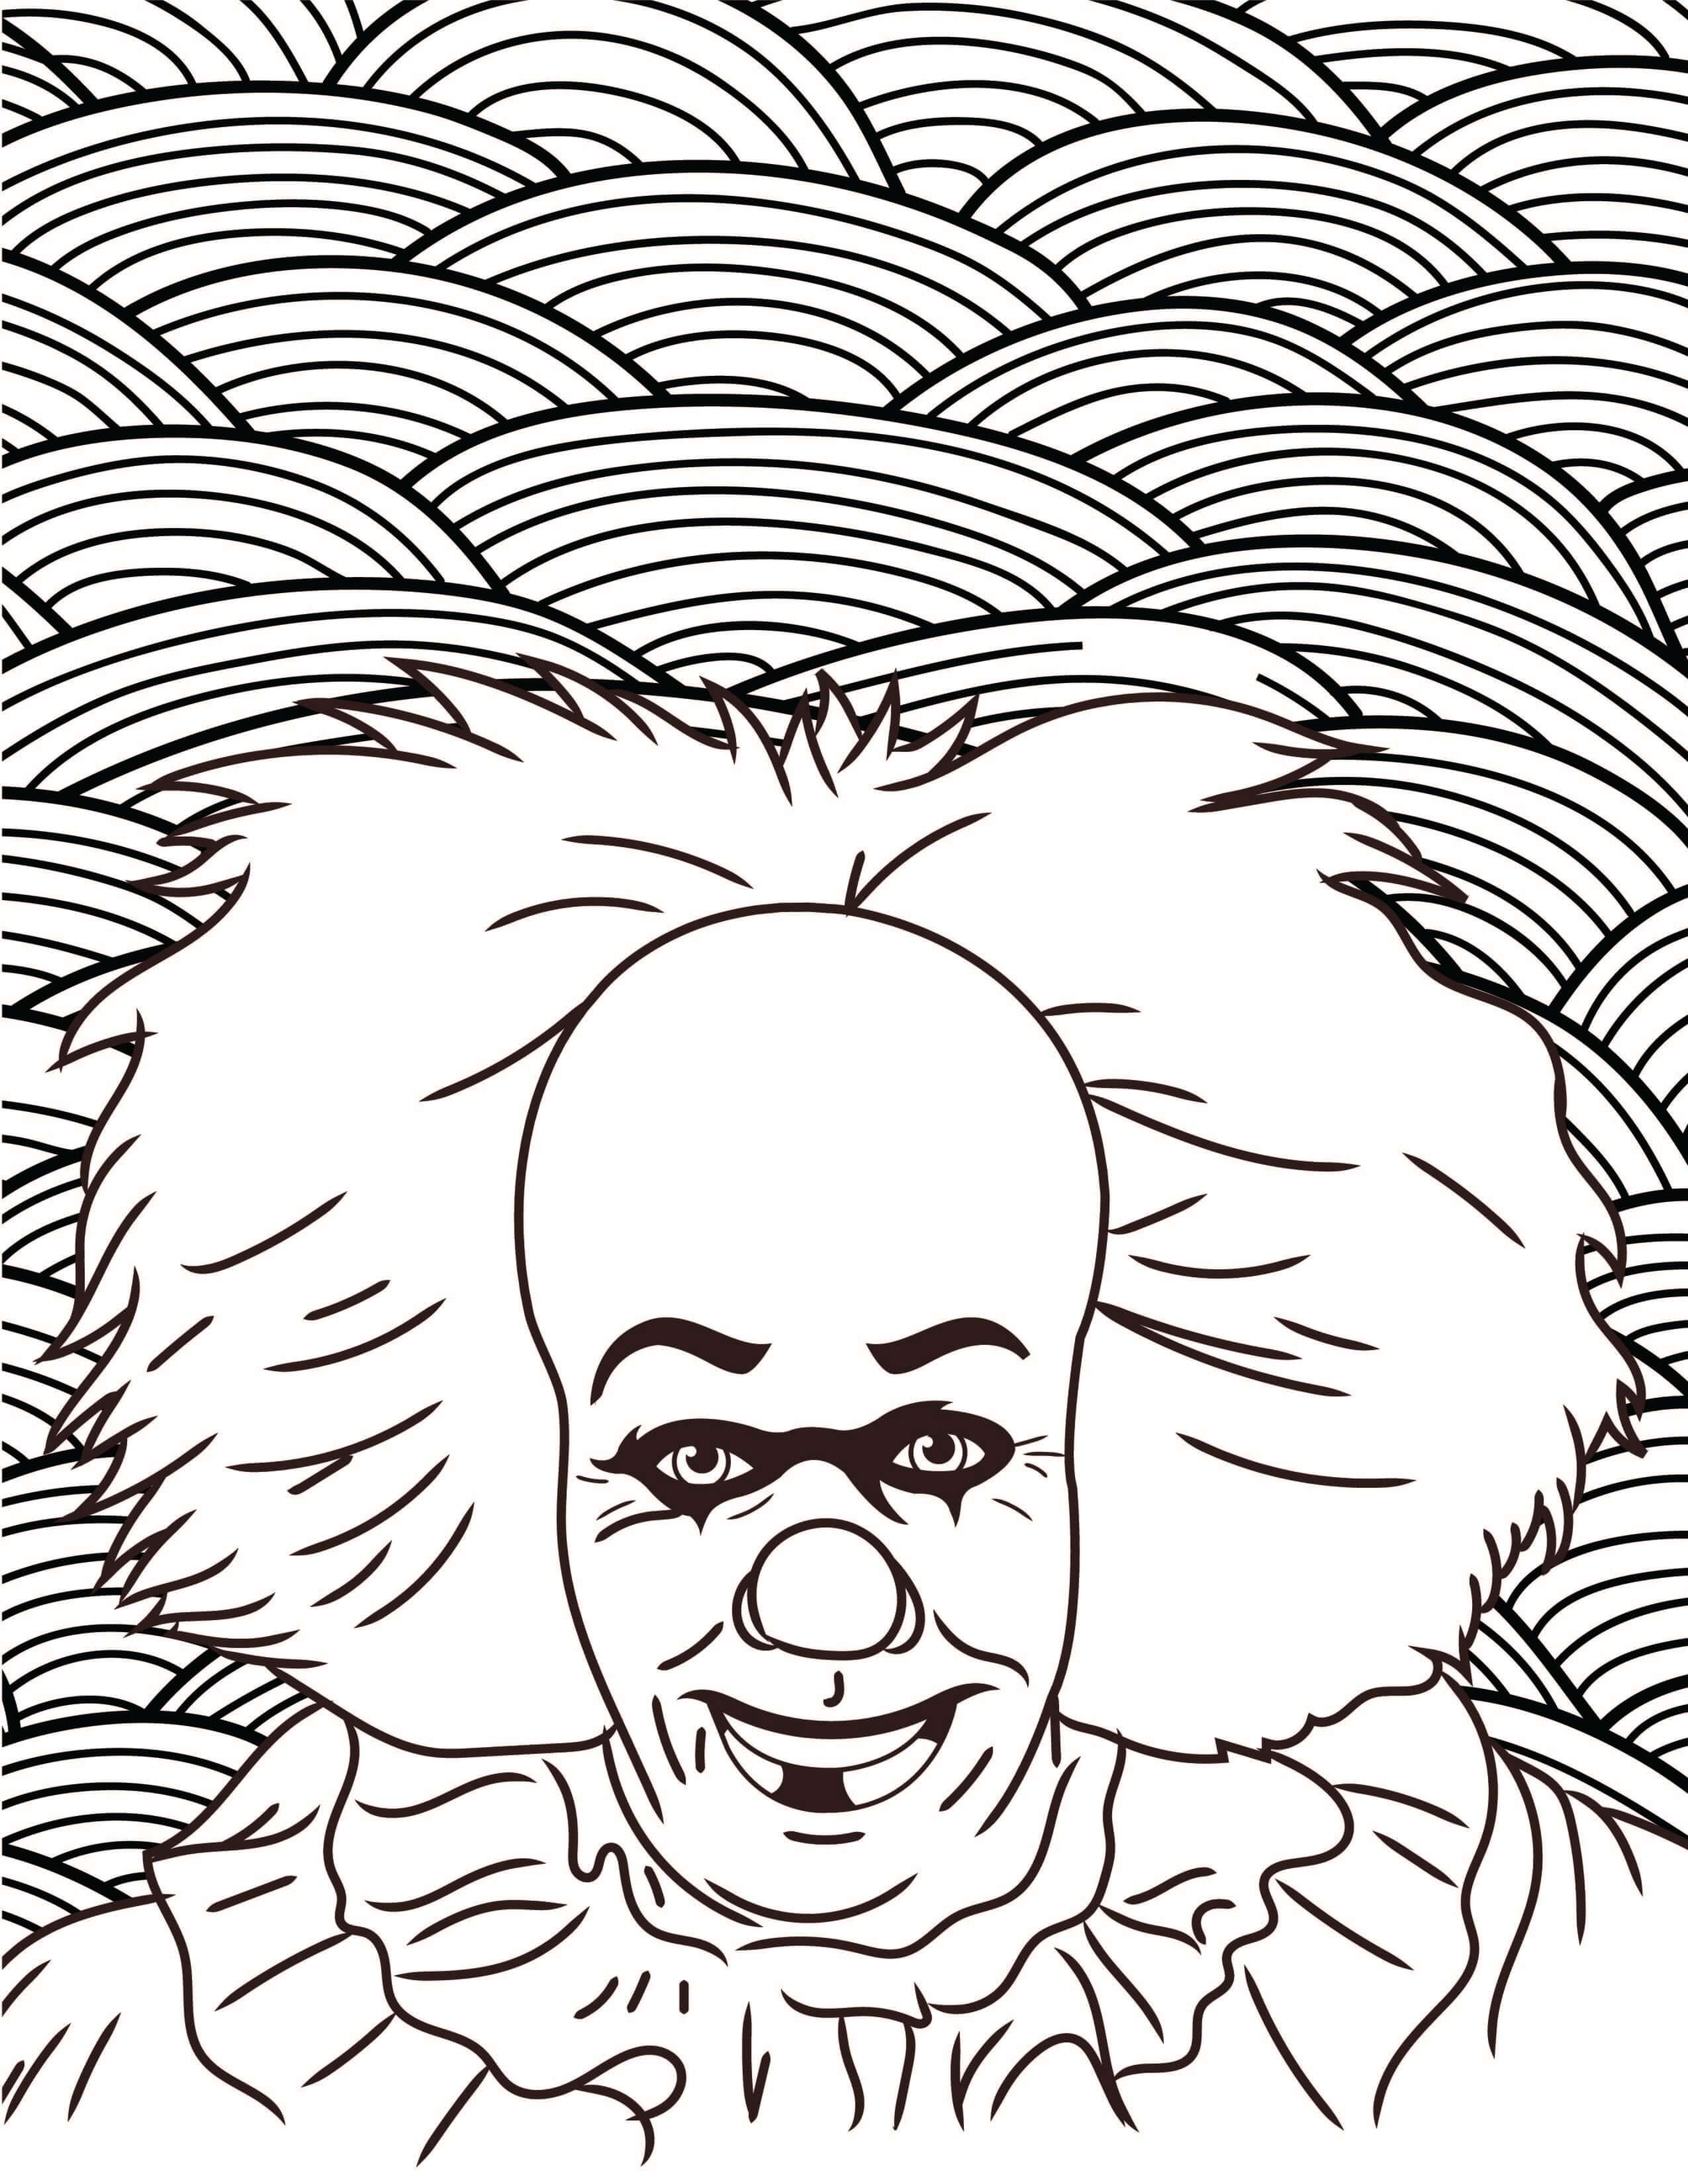 Pennywise Coloring Pages At Getcolorings